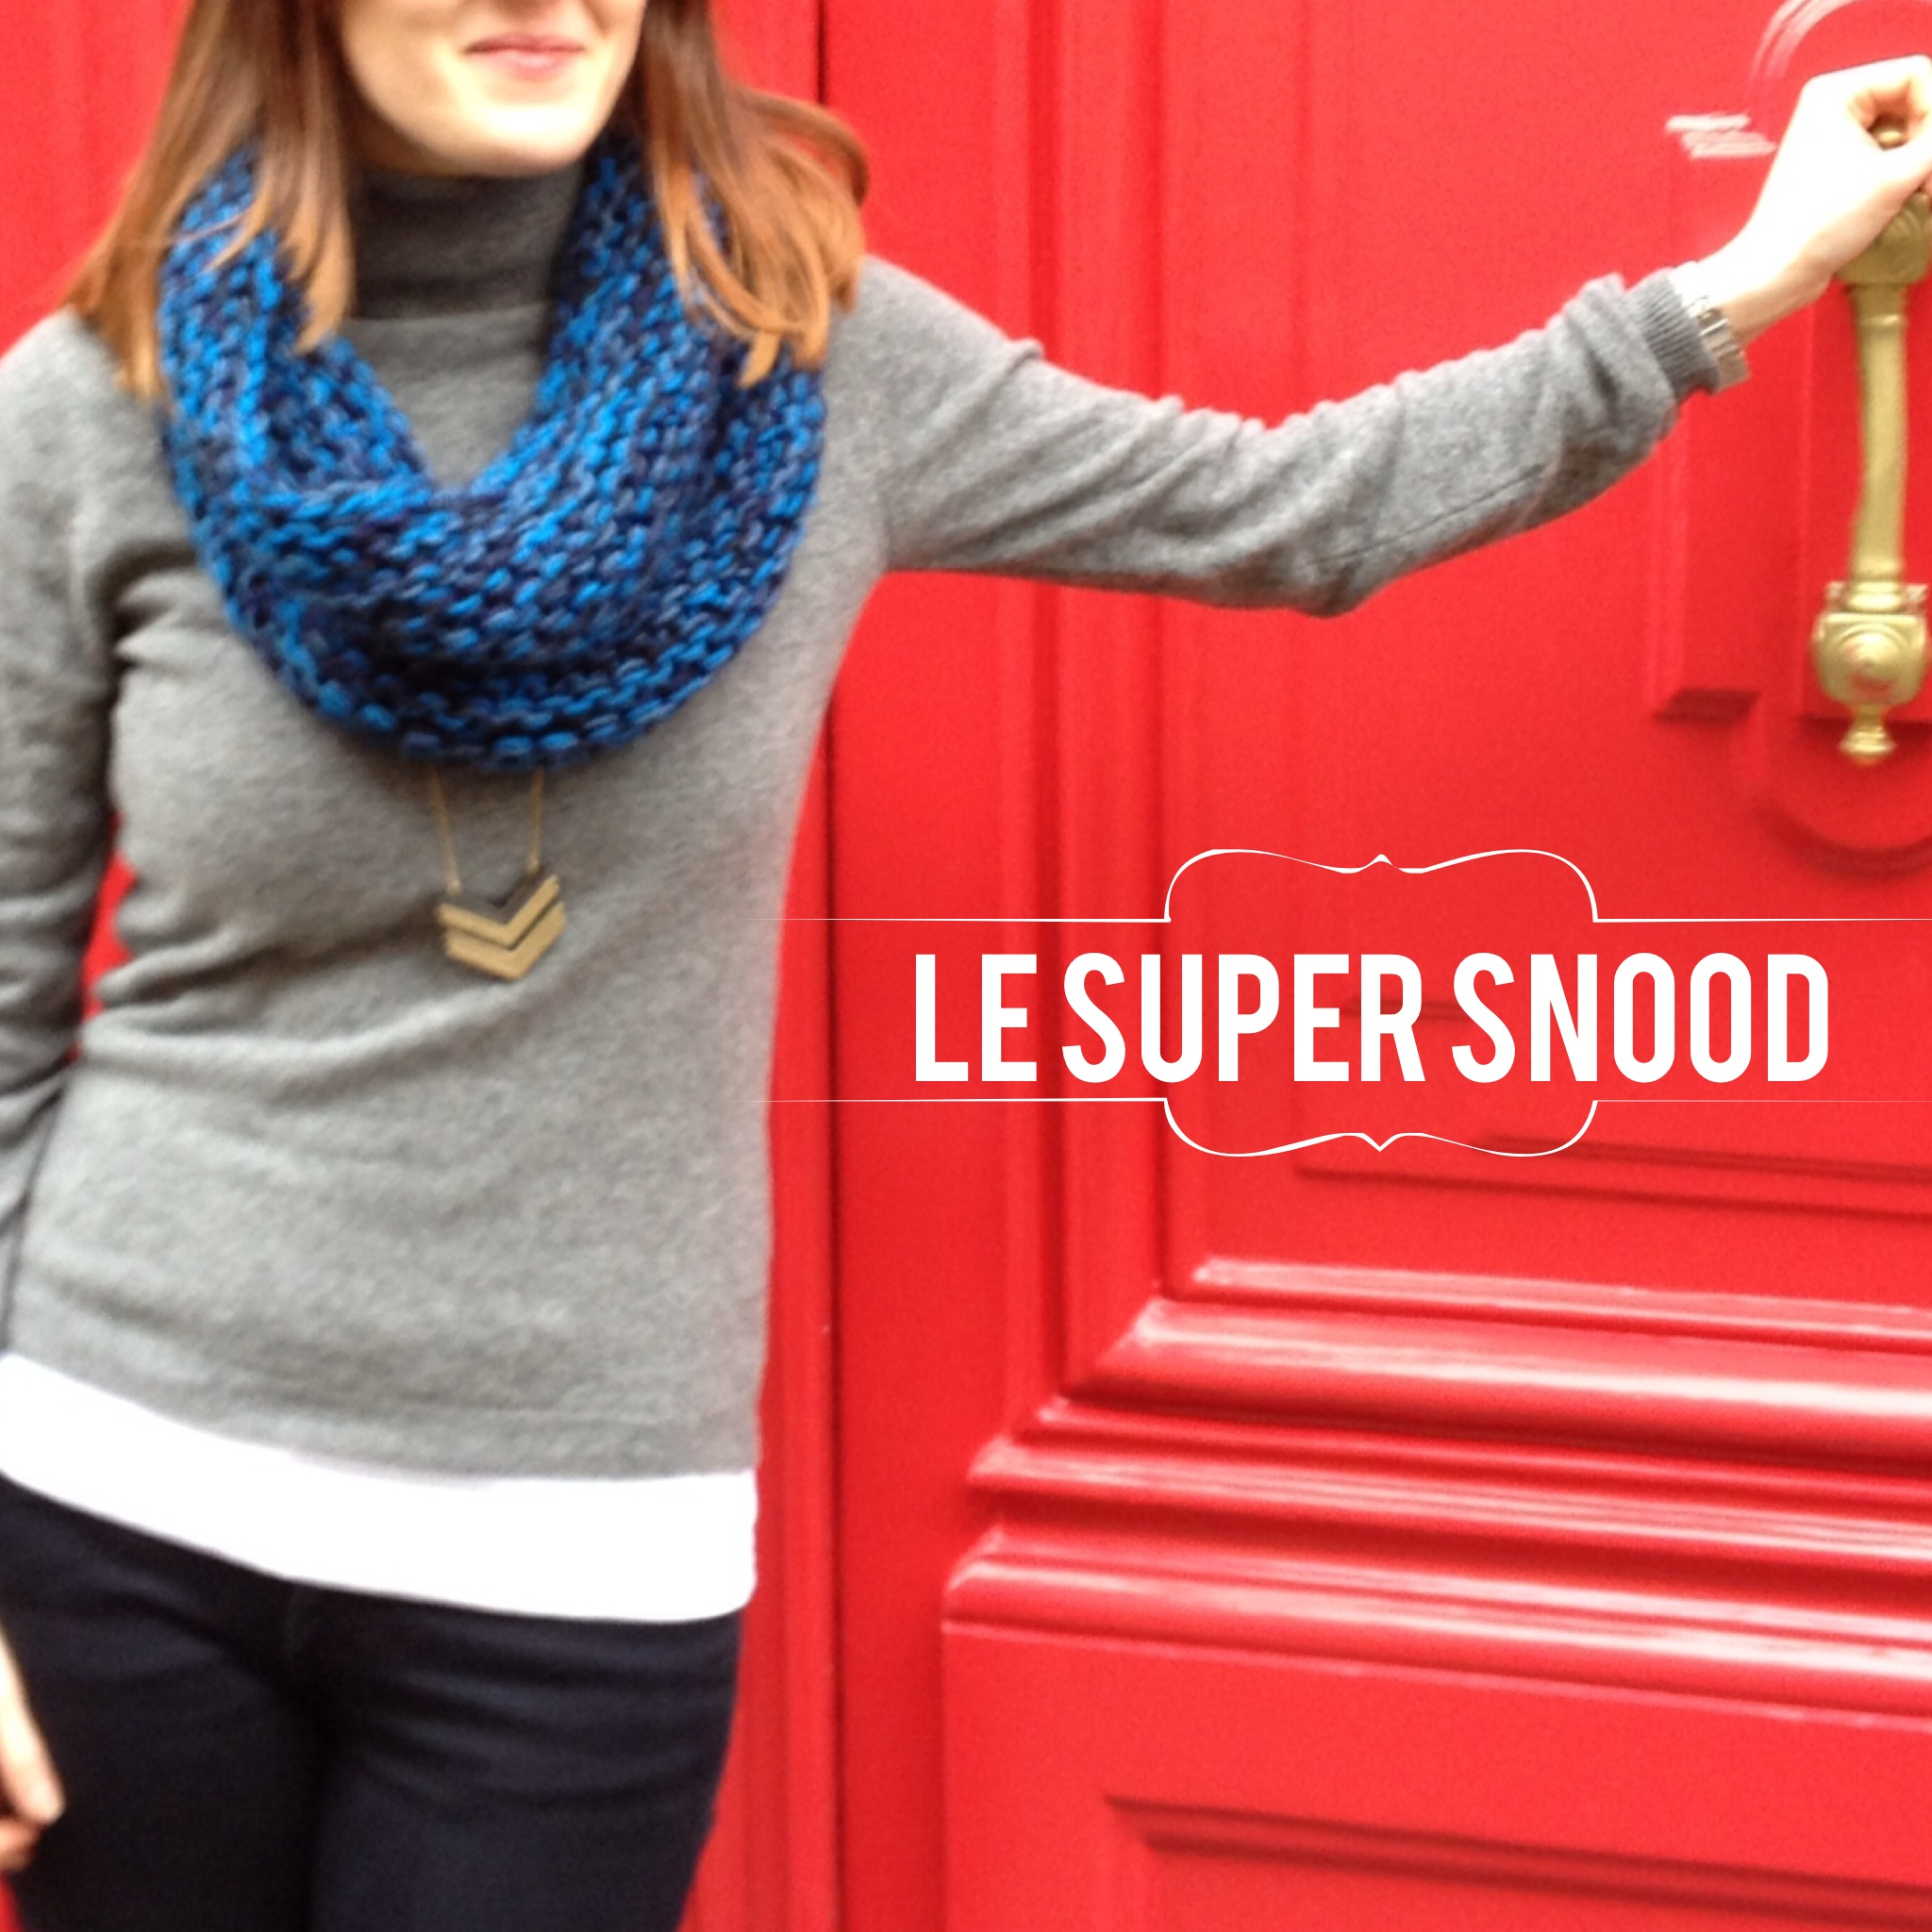 Le super snood